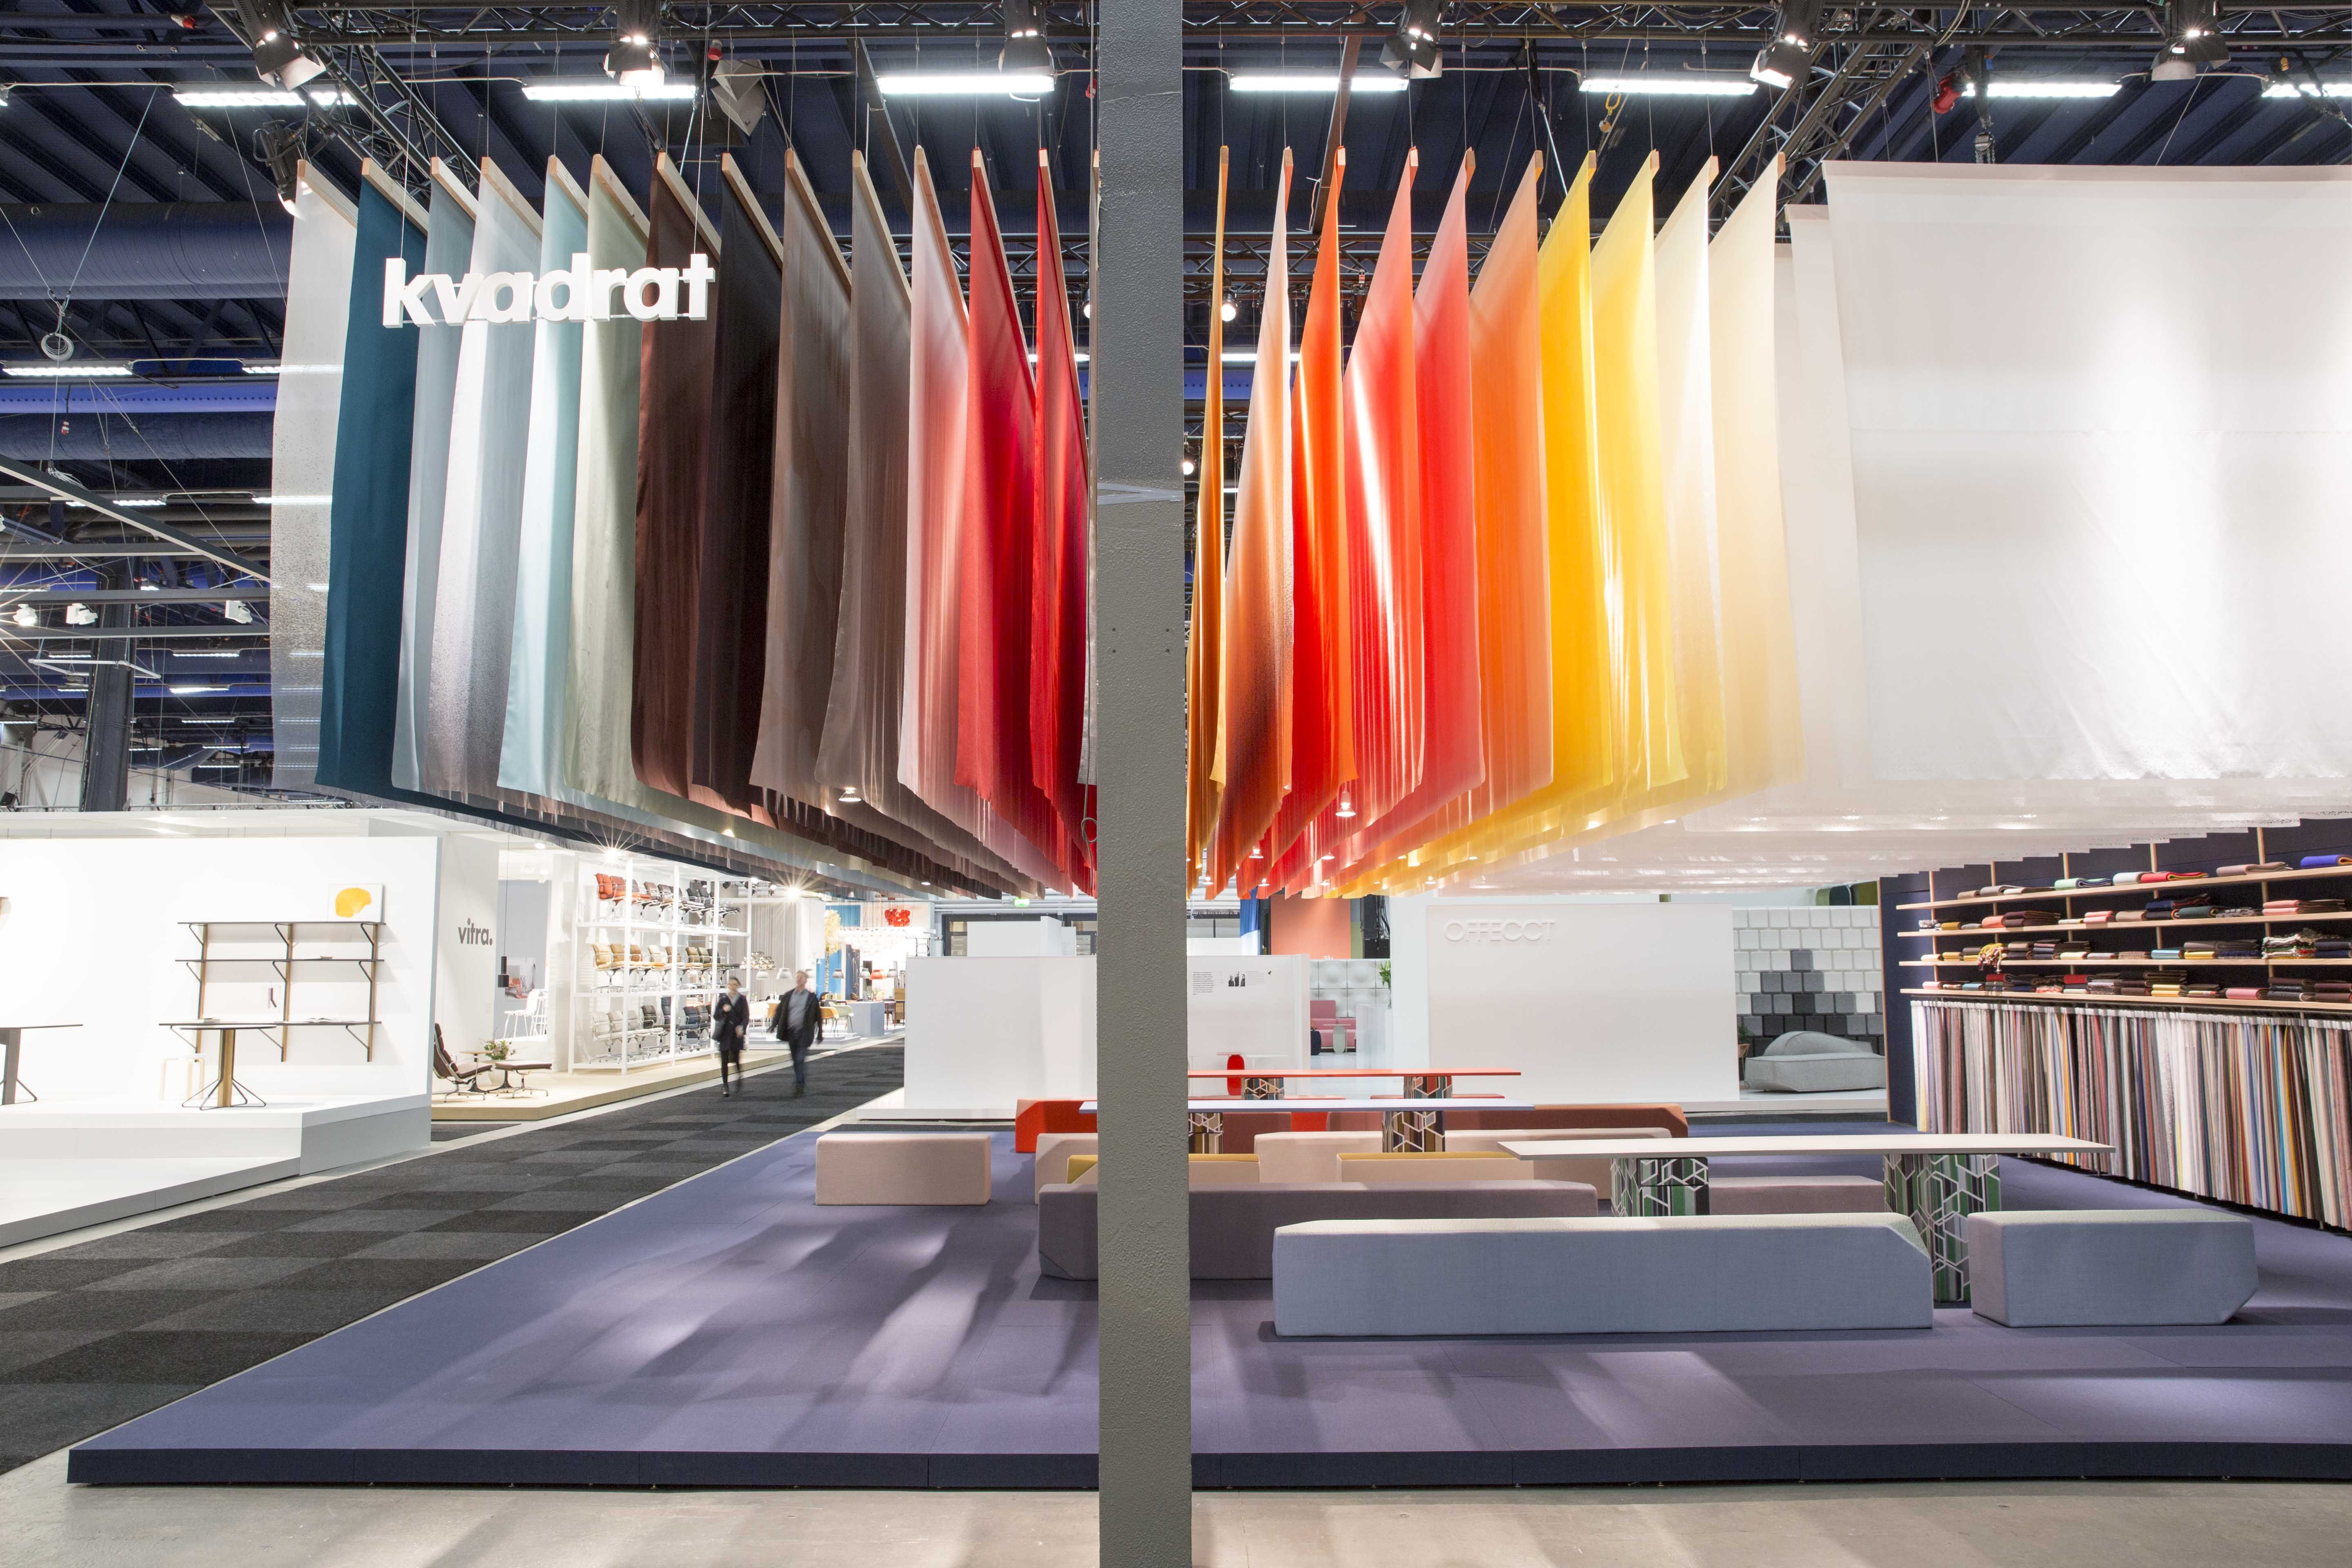 design pinterest stockholm google. A Colourful Textile Sky At The Kvadrat Stand During Stockholm Furniture Fair 2015. Design Pinterest Google